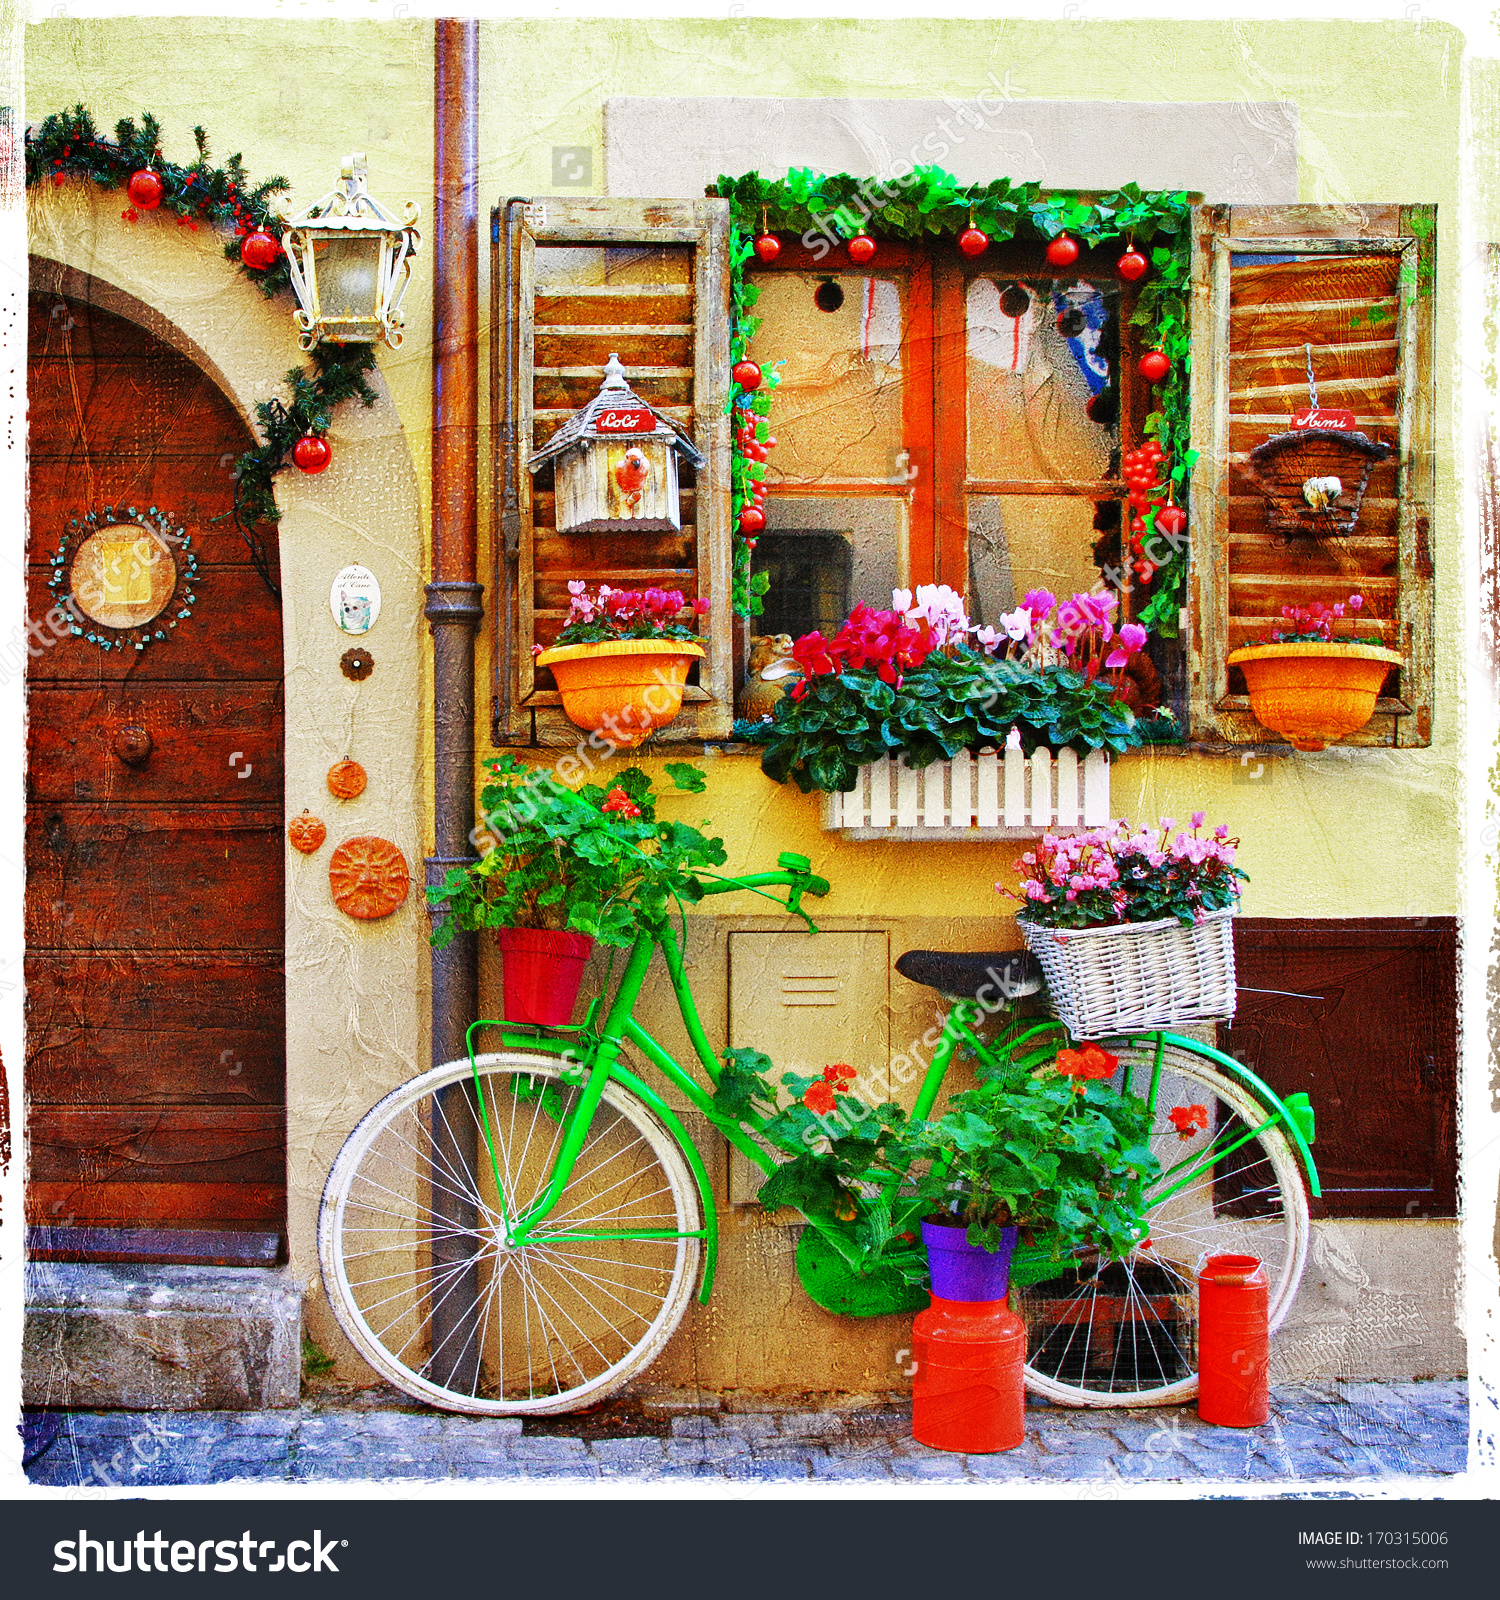 Pretty Streets Small Italian Villages Stock Photo 170315006.